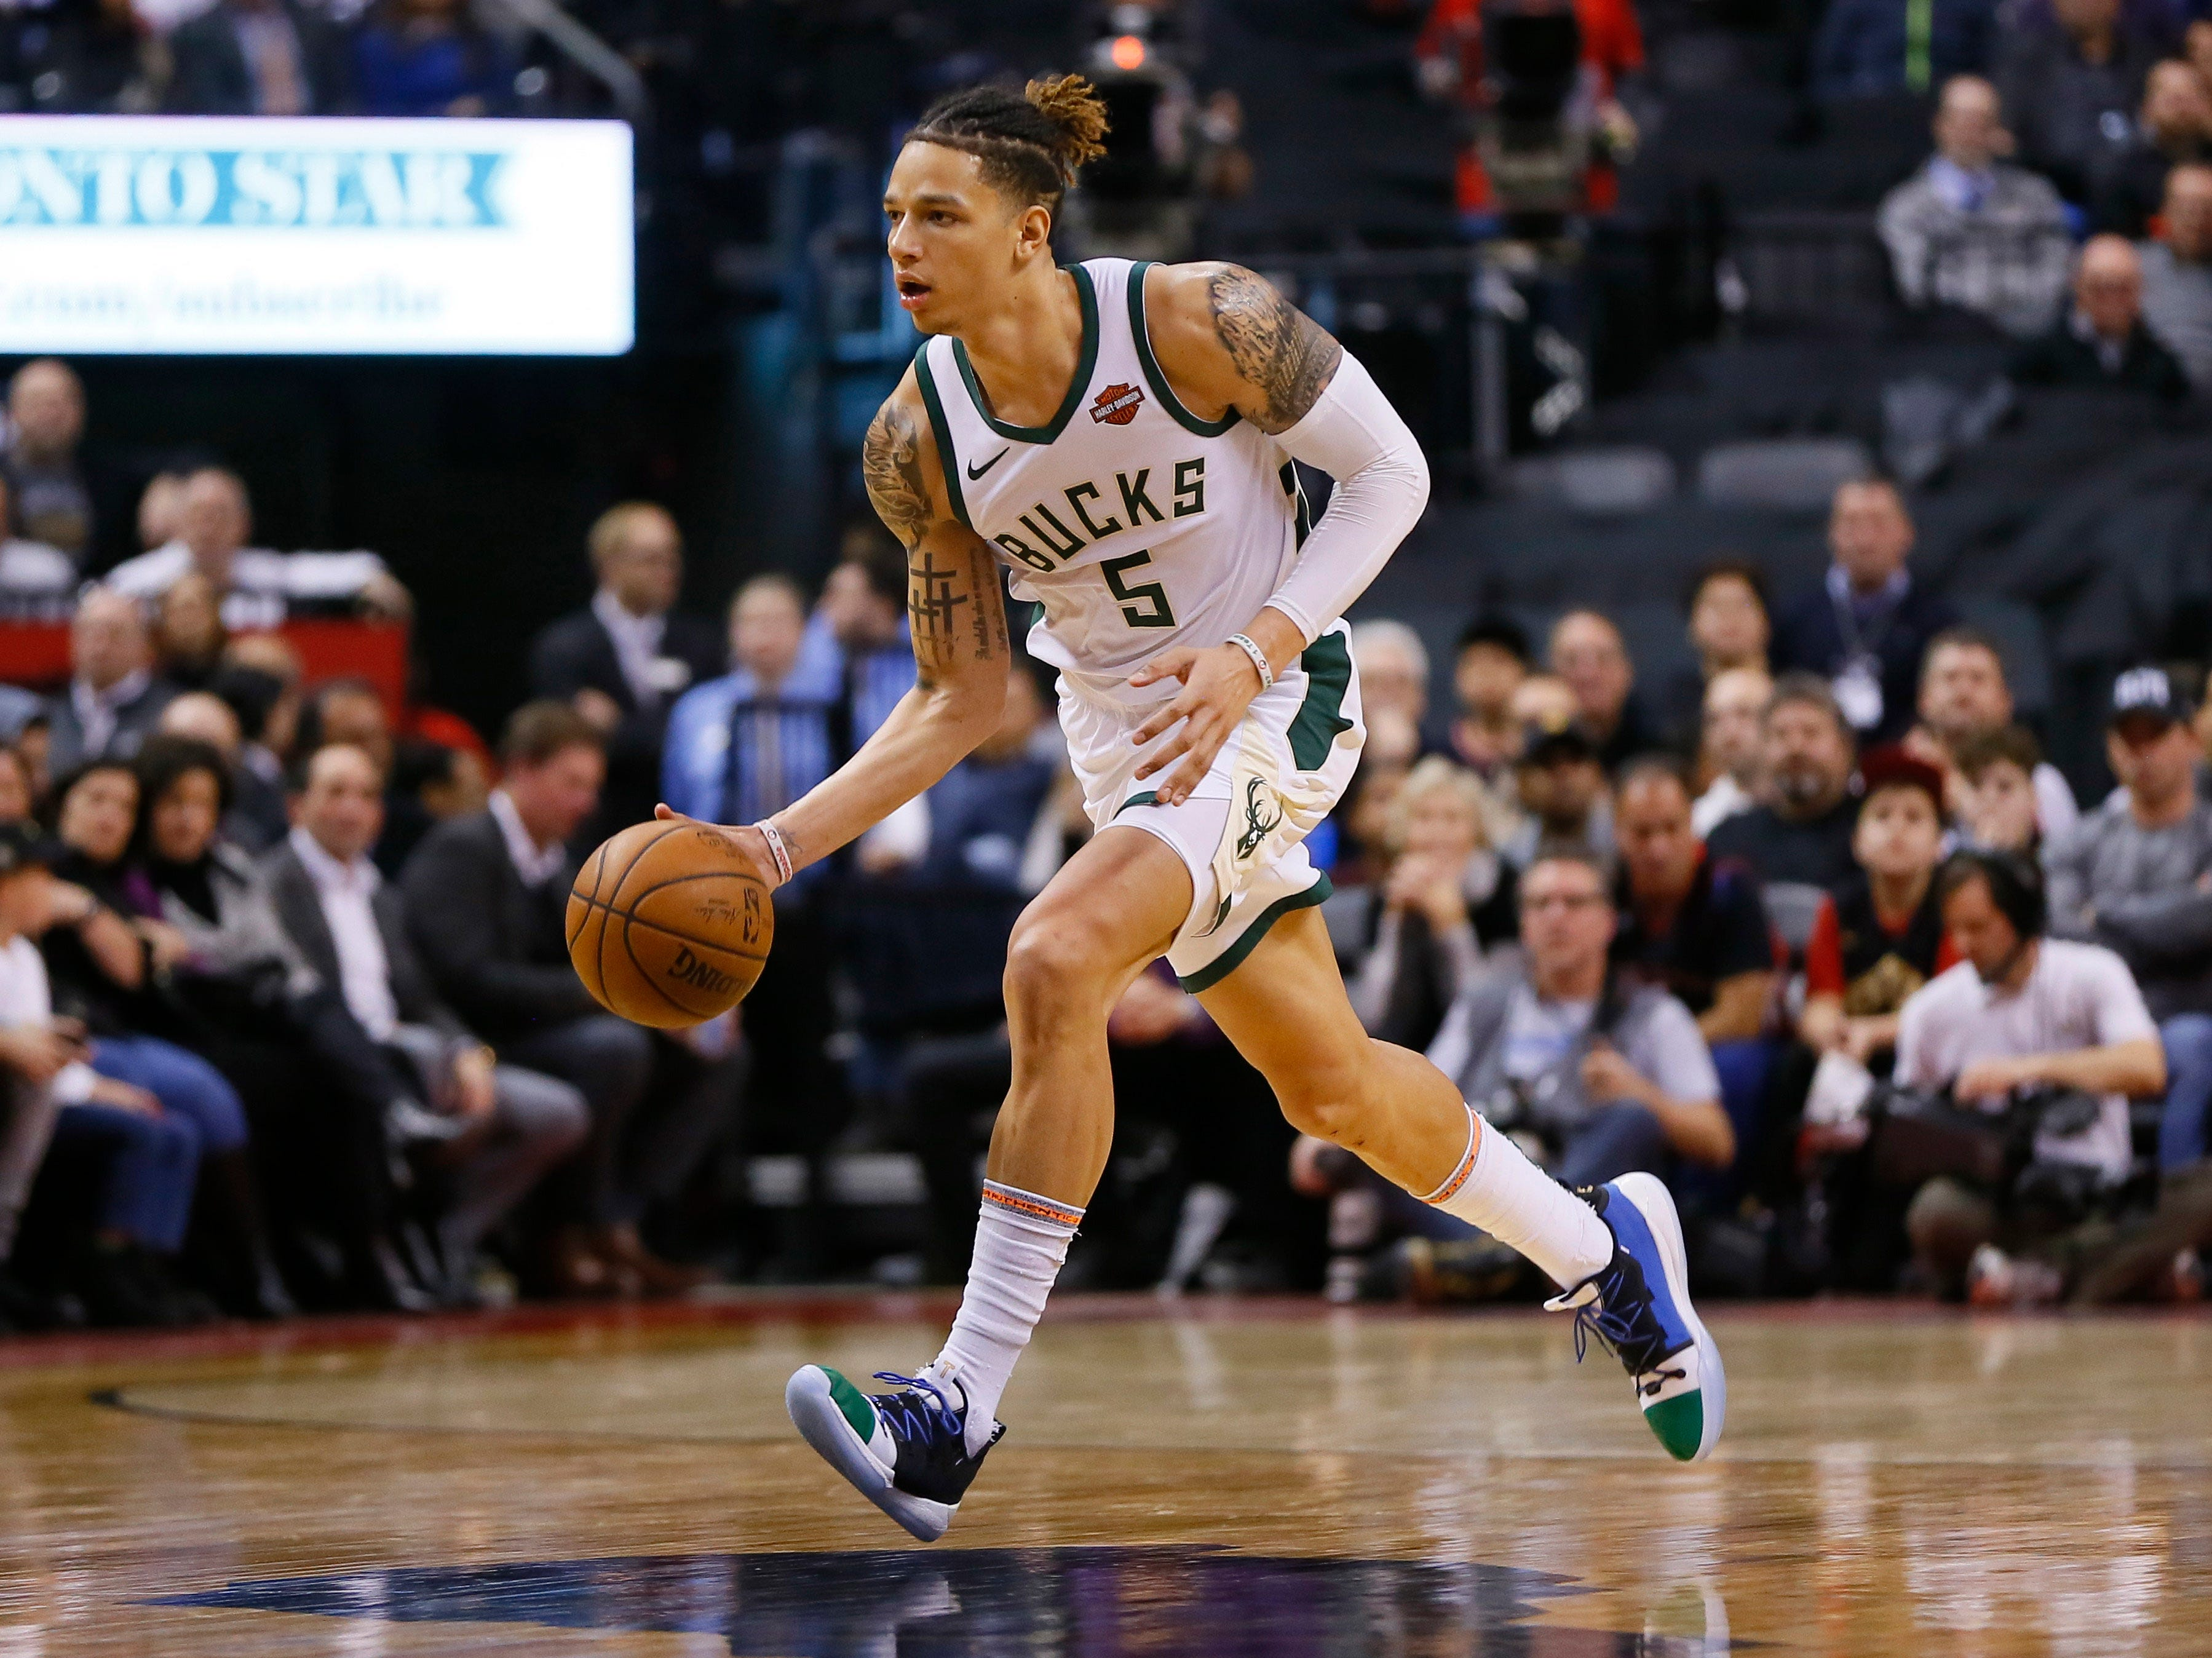 D.J. Wilson gave the Bucks a big boost off the bench in their victory over the Raptors as he second 16 points on Thursday night.